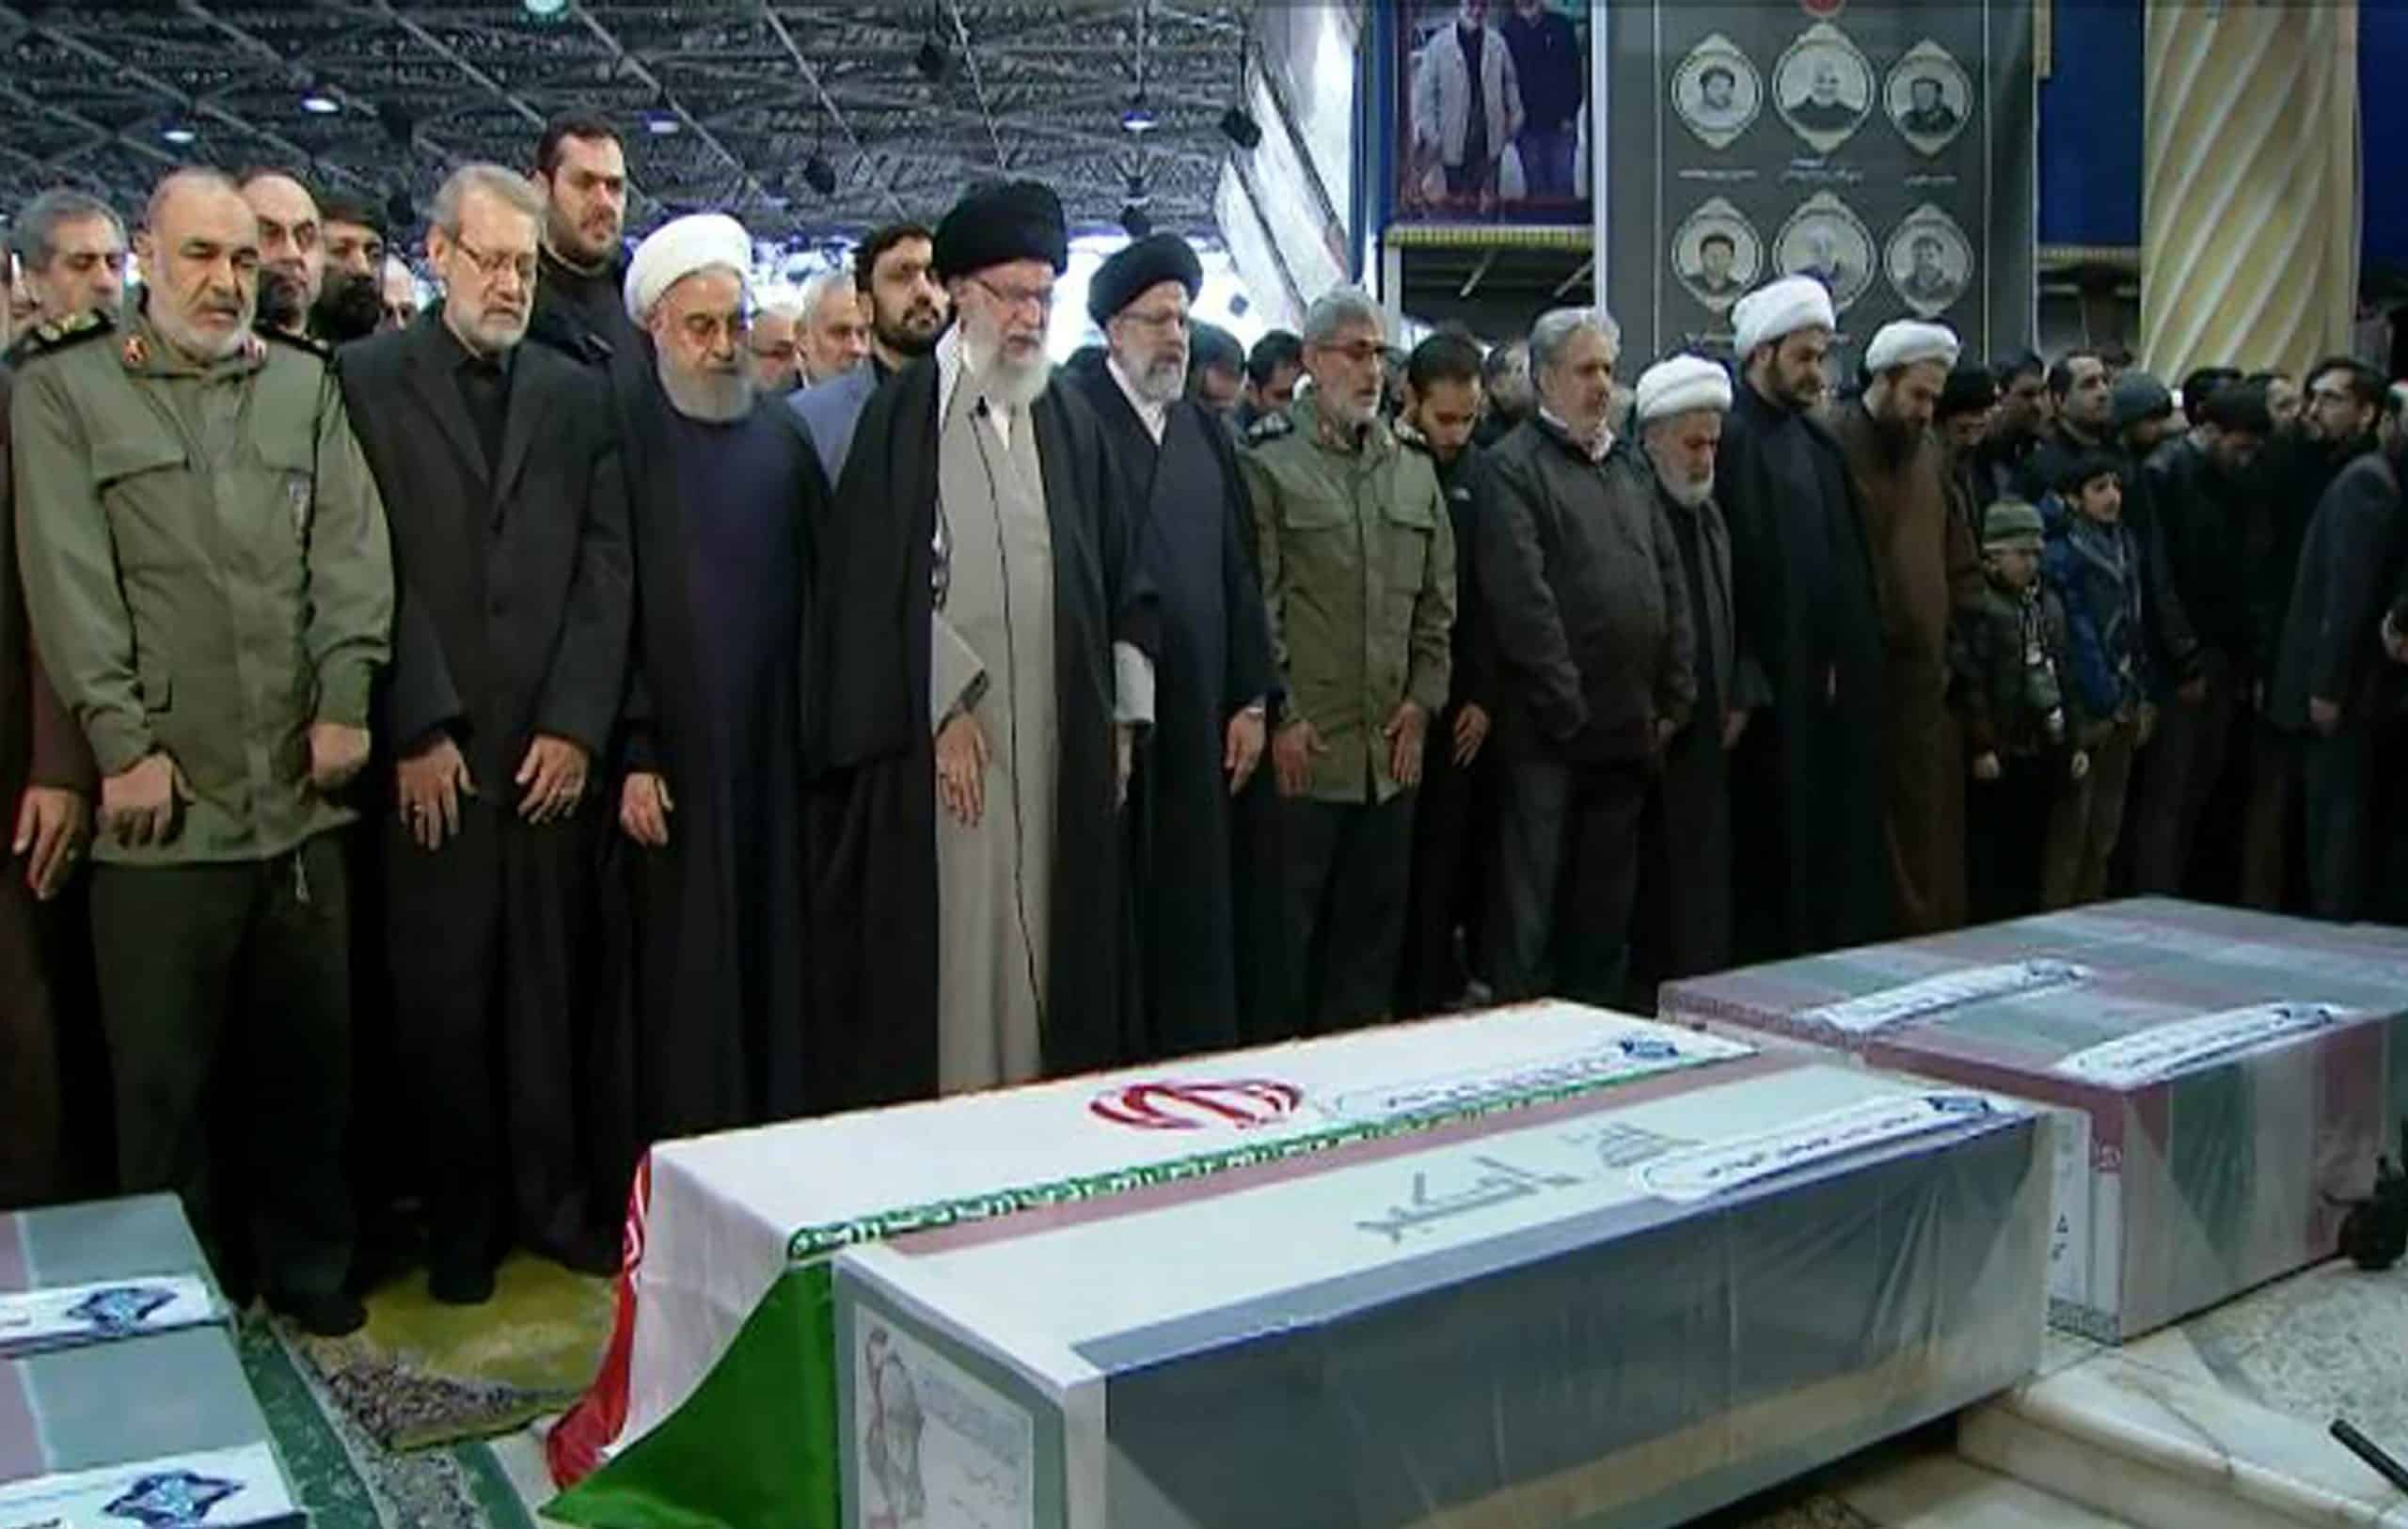 Weeping, Iran supreme leader prays over general slain by US